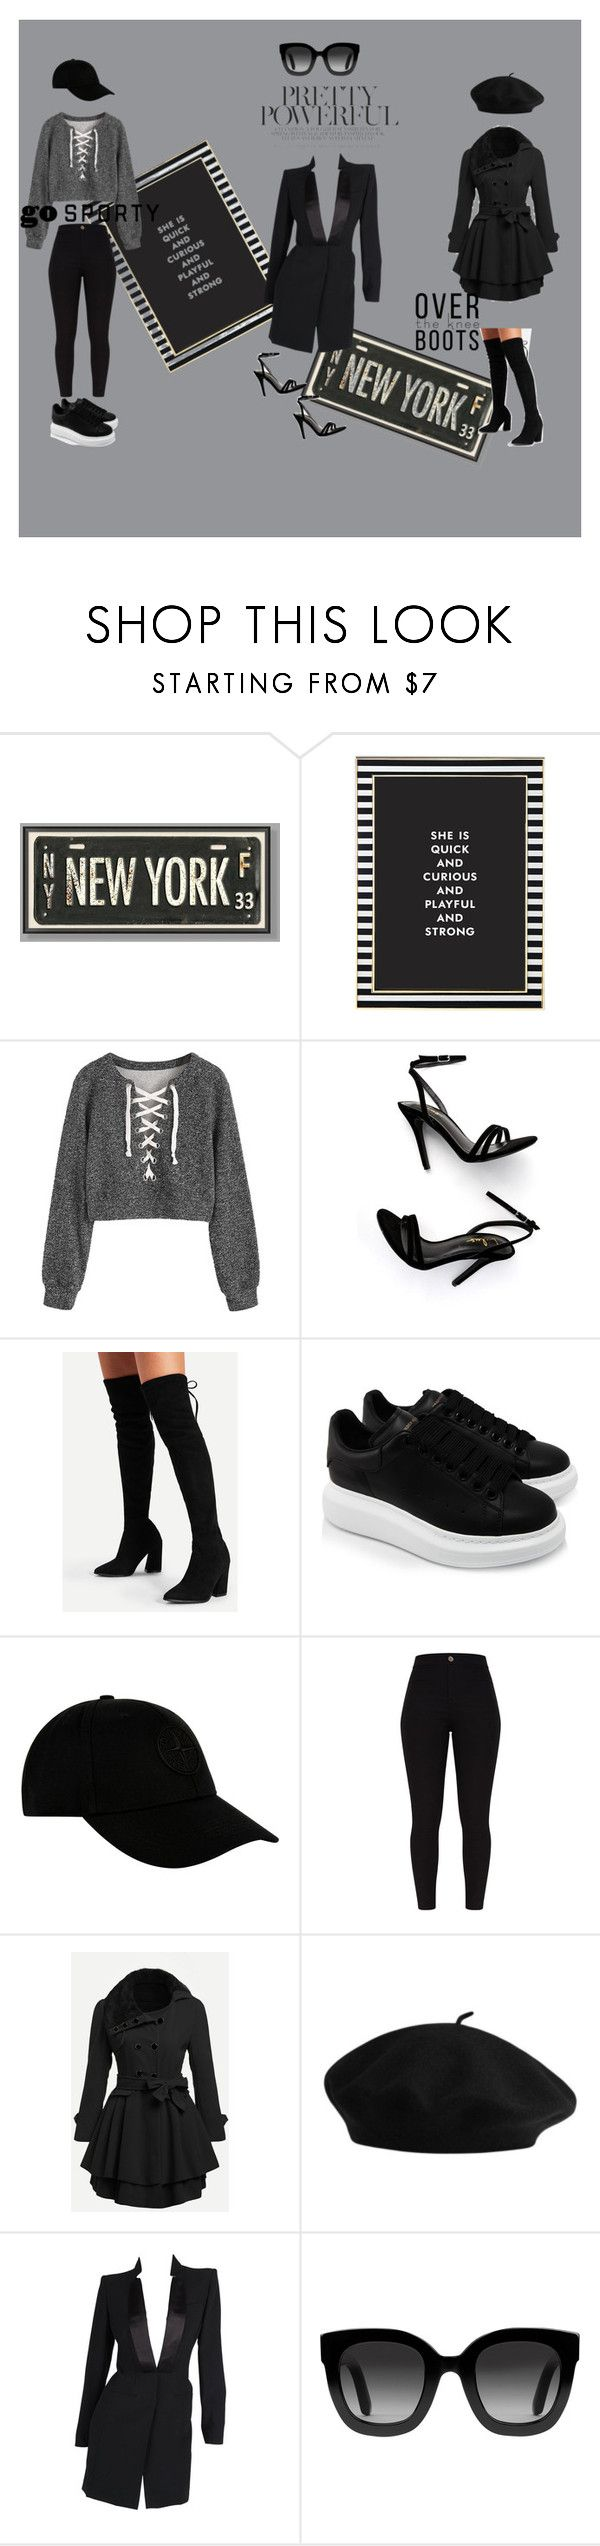 """""""3 Outfits - Pack and Go"""" by xgalaxyunicornx on Polyvore featuring PBteen, Kate Spade, LULUS, Alexander McQueen, STONE ISLAND and Gucci"""